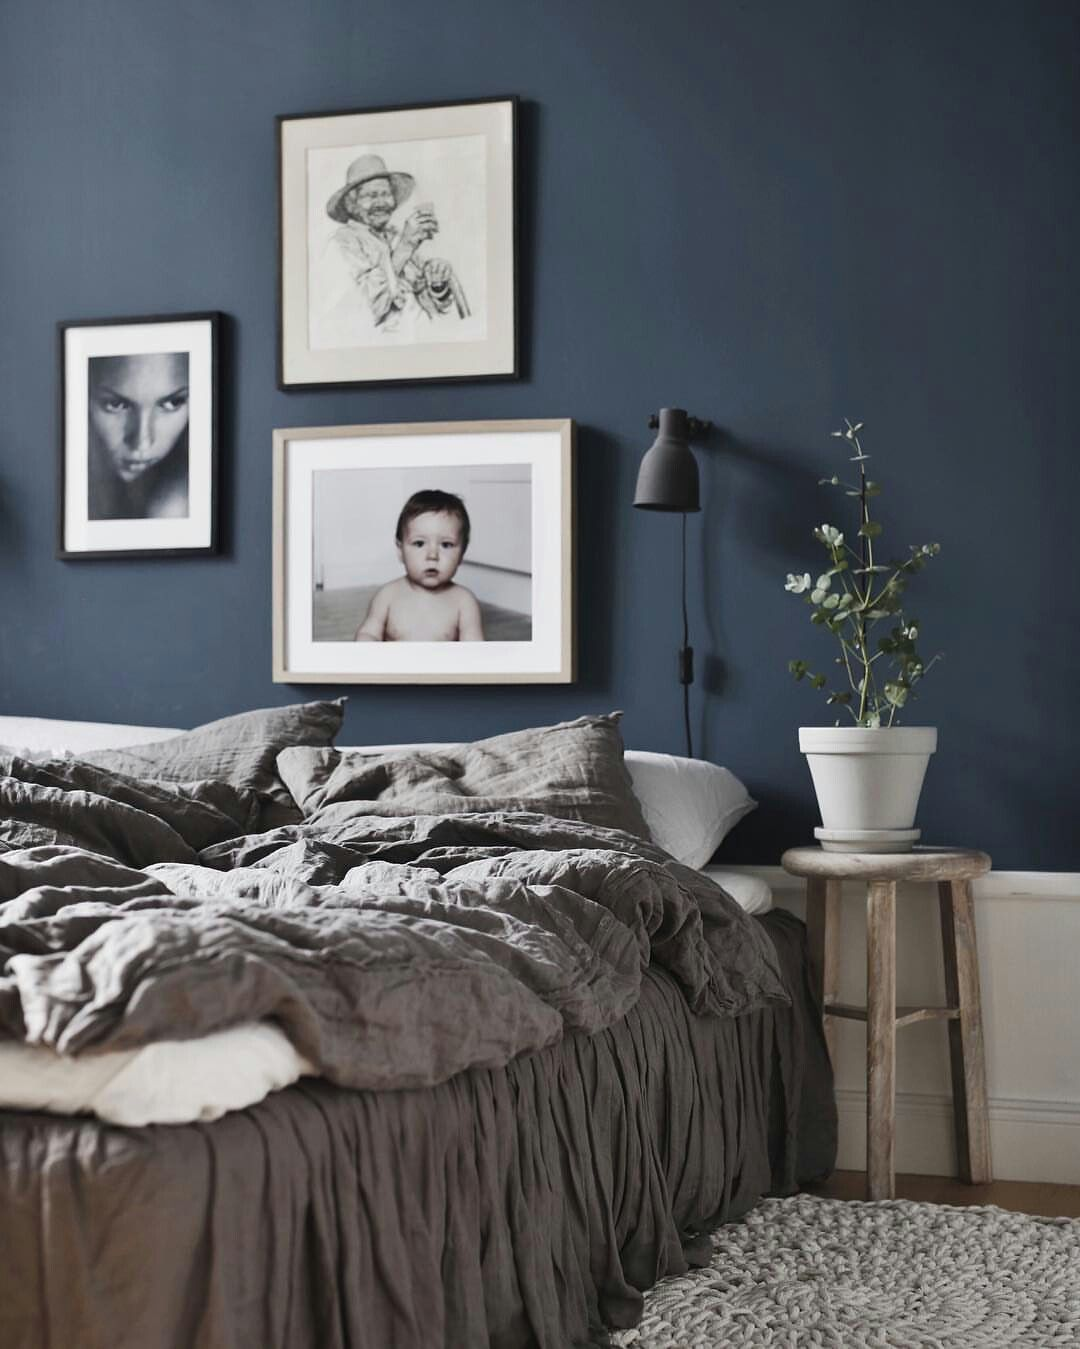 Dark Blue Bedroom Wall Home Sweet Home Pinterest Dark Blue Bedrooms Blue Bedroom Walls